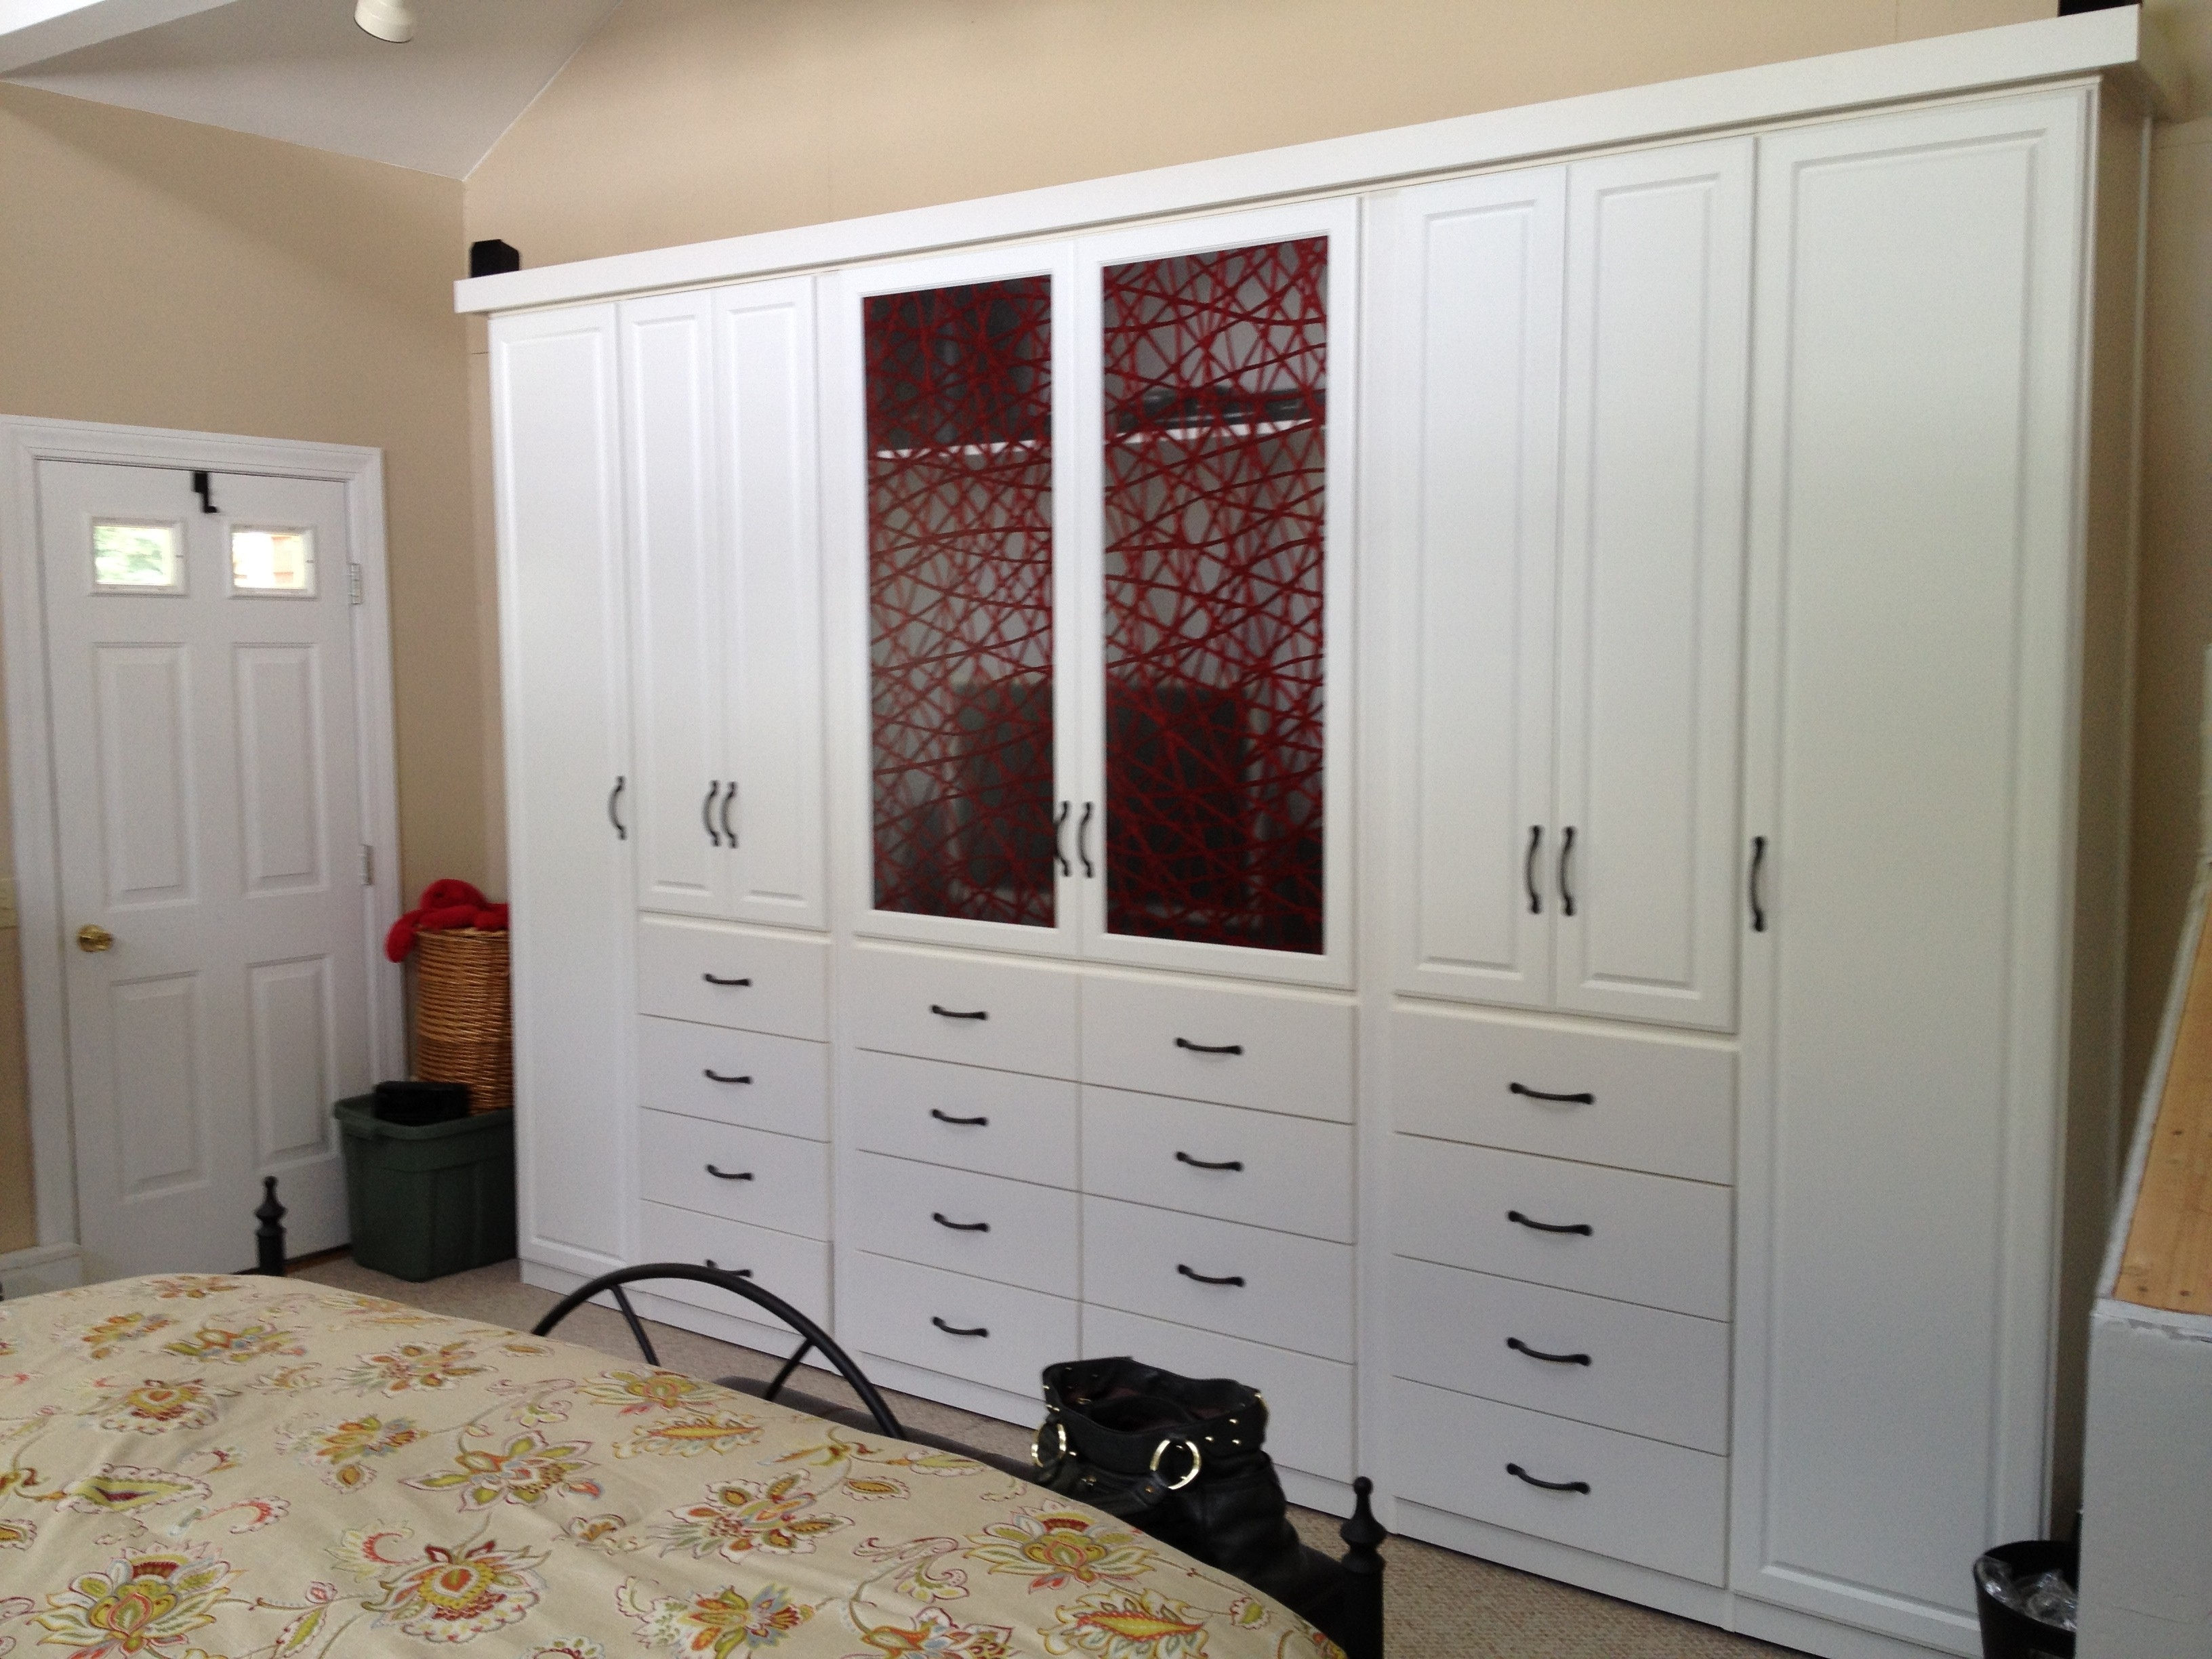 White Stained Wooden Wardrobe Having Mani Drawers And Mirror Also Intended For Preferred White Wardrobes With Drawers And Mirror (View 8 of 15)